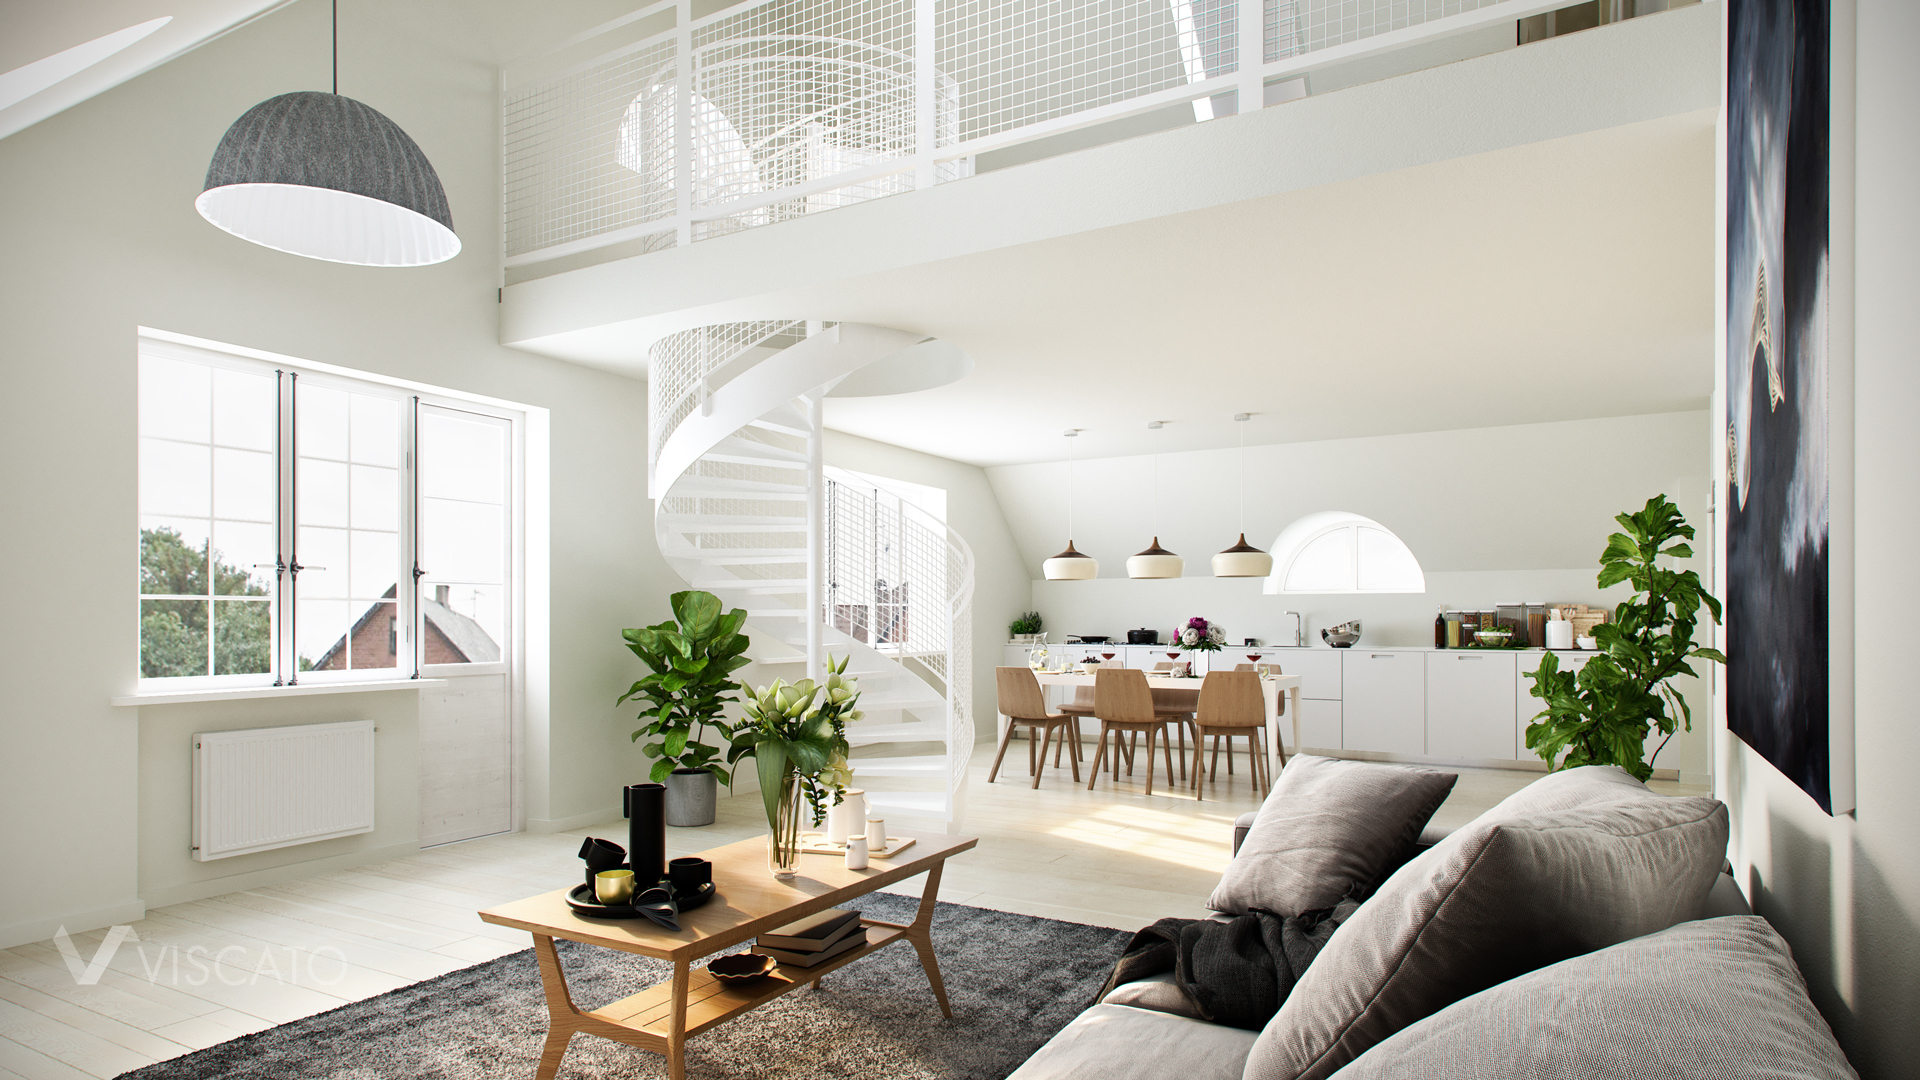 3D Design Rendering with grey sofa and wooden elements Viscato